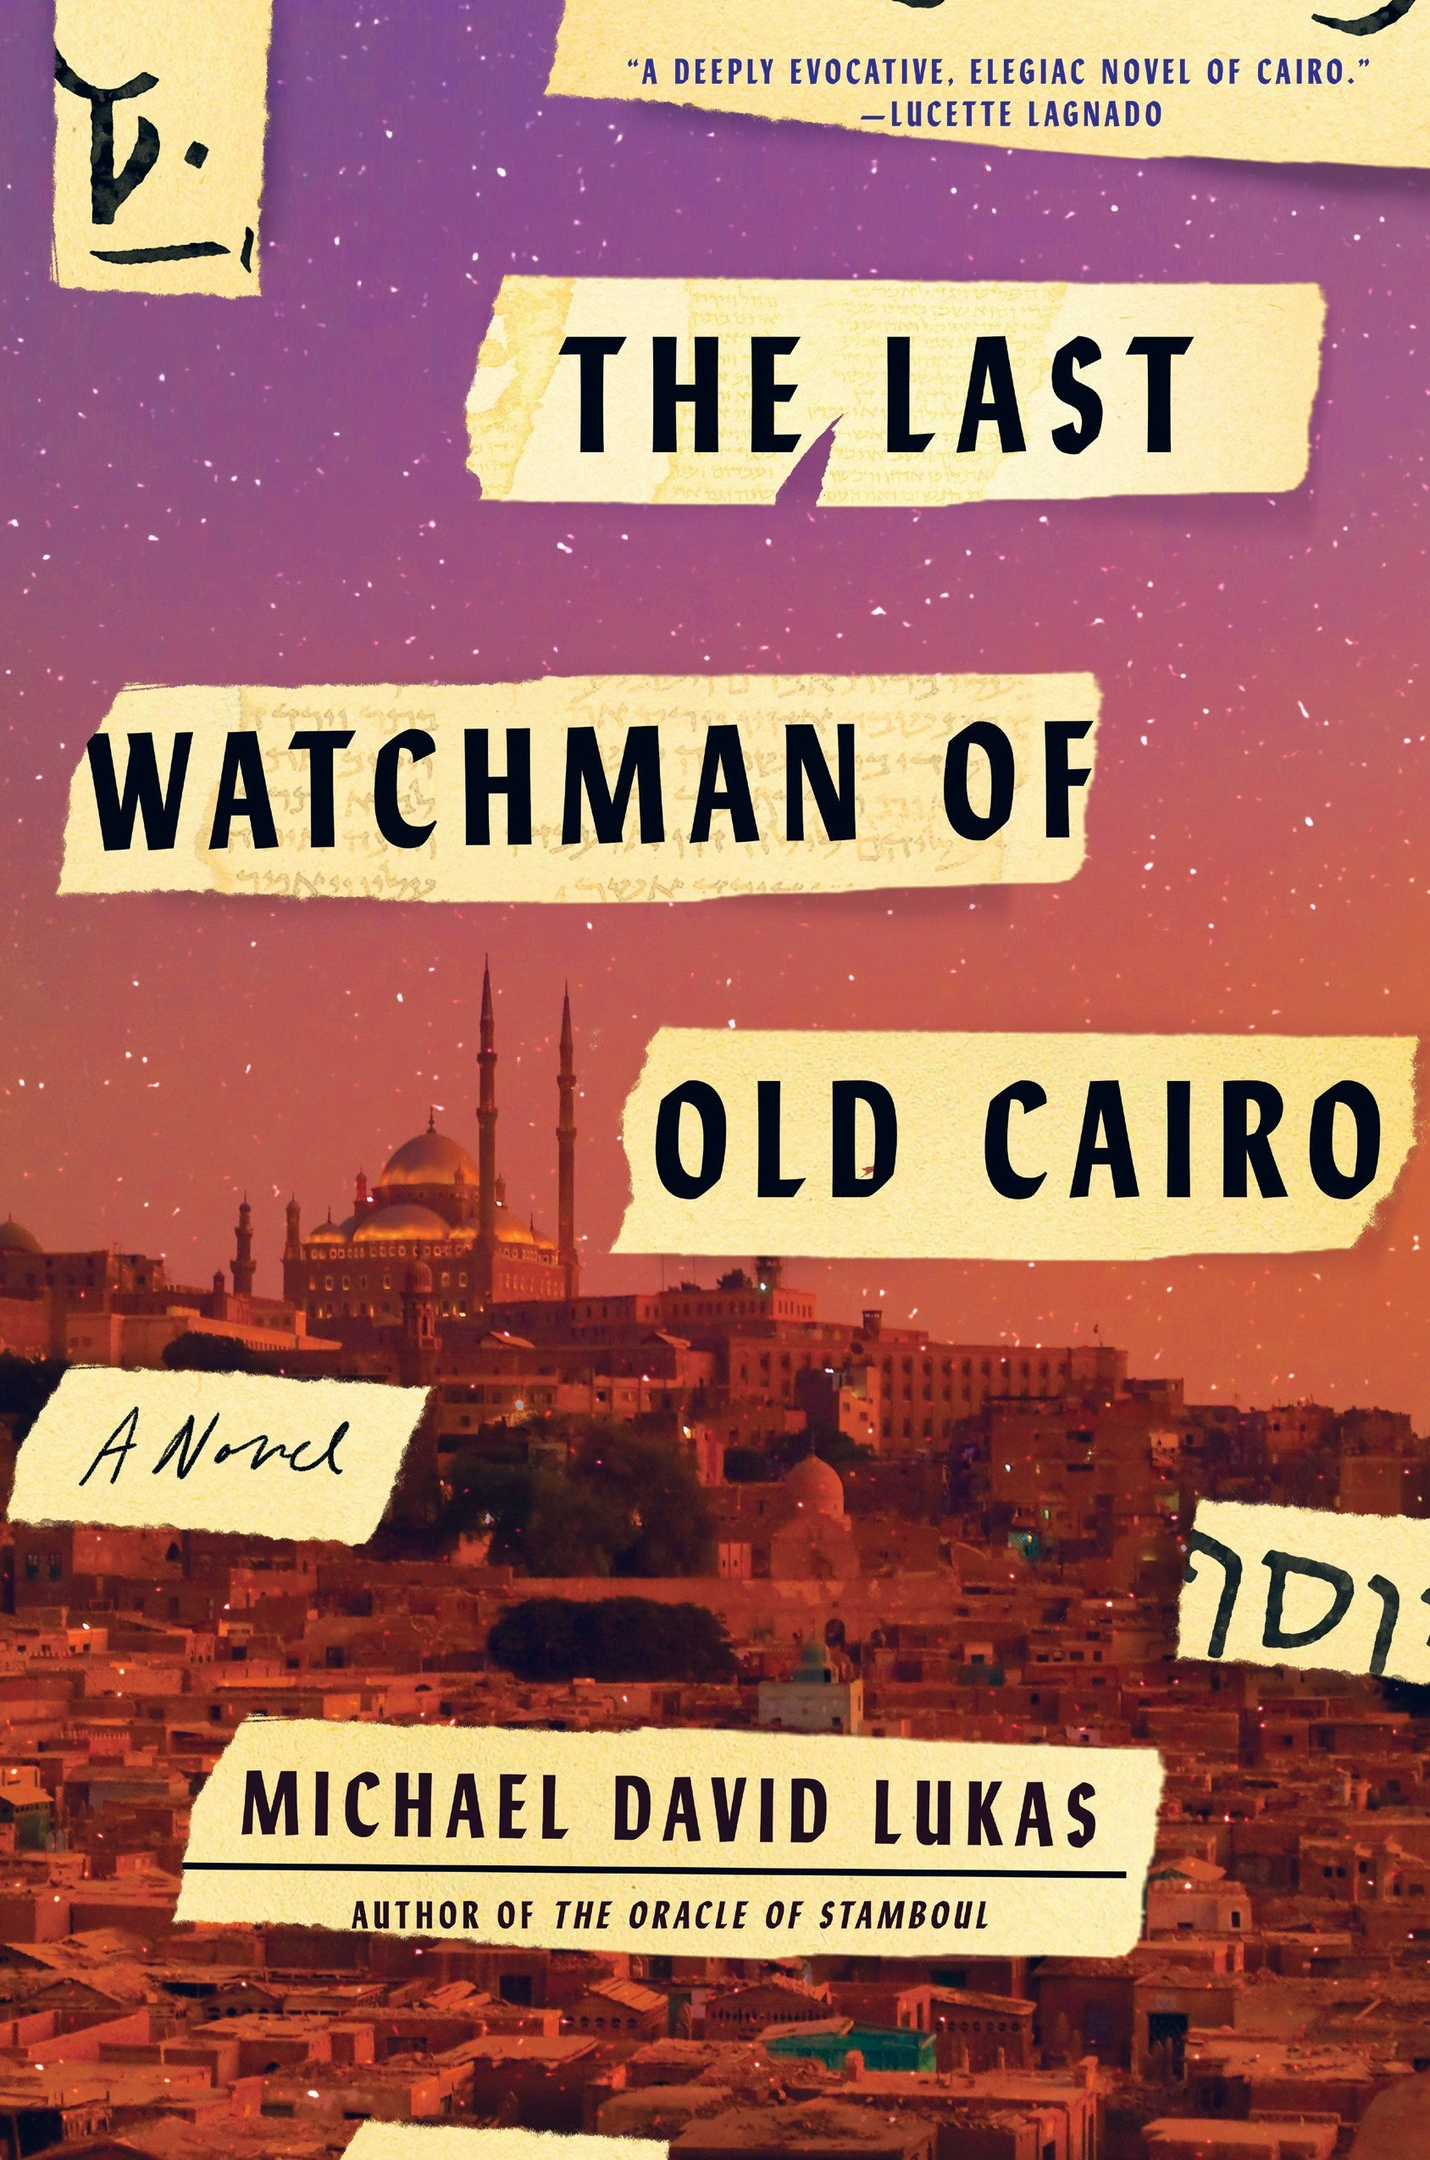 Michael David Lukas – The Last Watchman Of Old Cairo